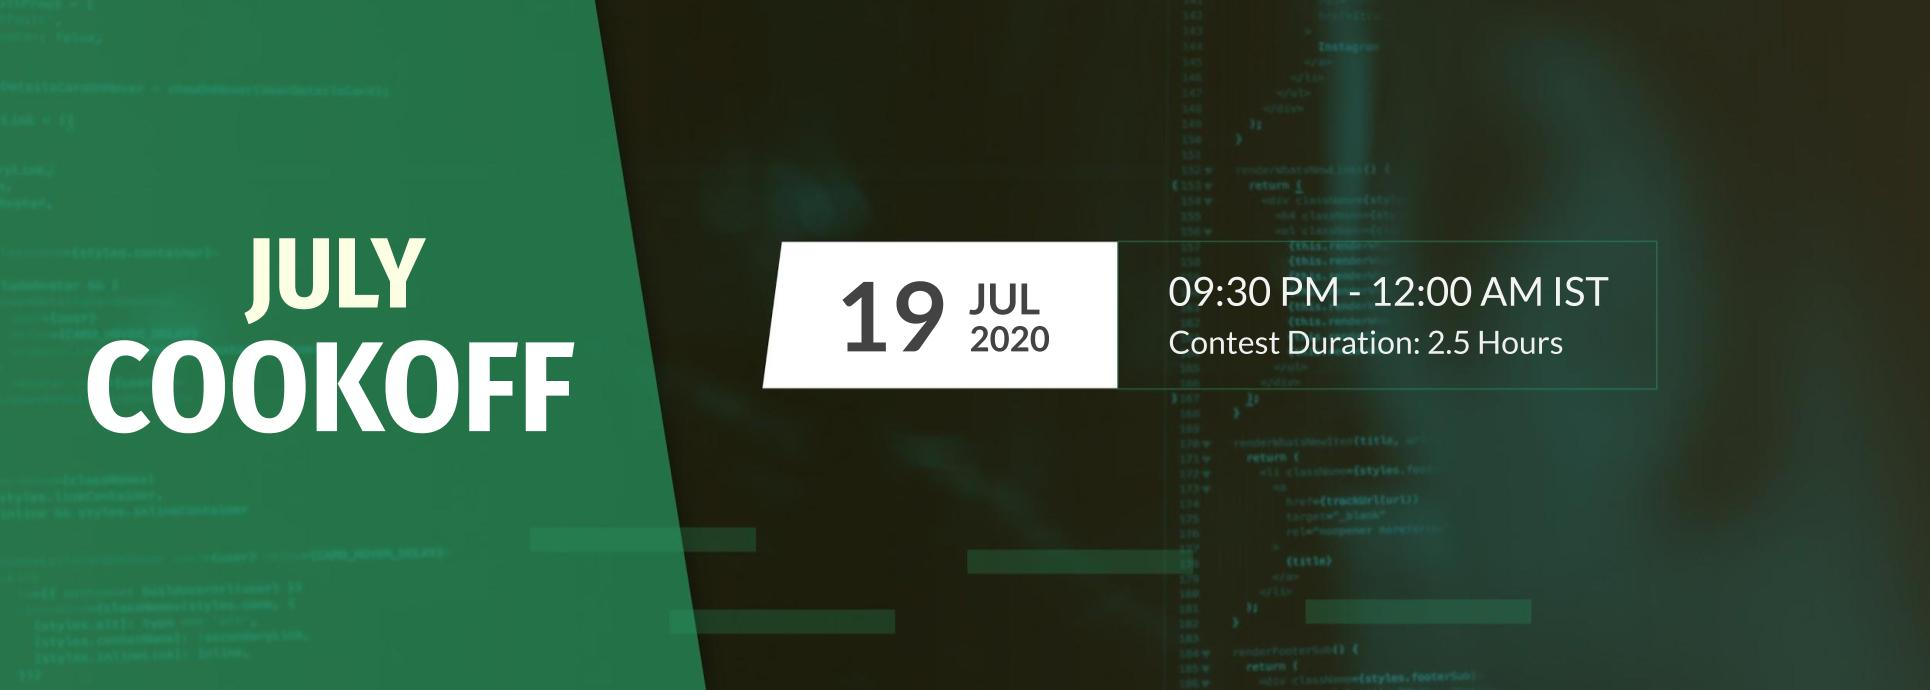 The CodeChef Challenge, Write code. Win stuff, Compete against the best programmers in India, Submit solutions in any of our 35 programming languages, Win awesome prizes.